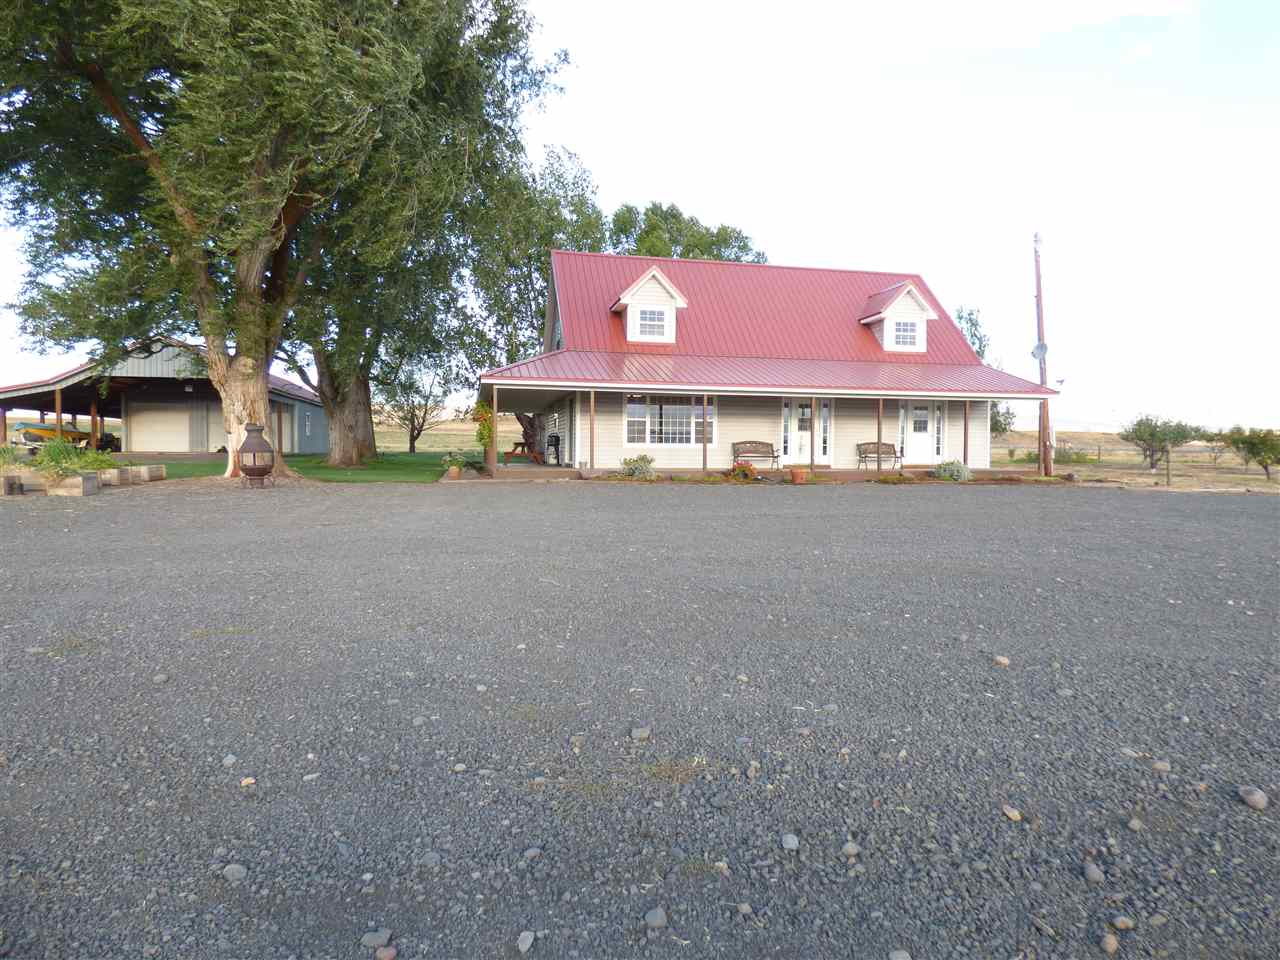 Farm / Ranch for Sale at 2340 Highway 95 Midvale, Idaho 83645